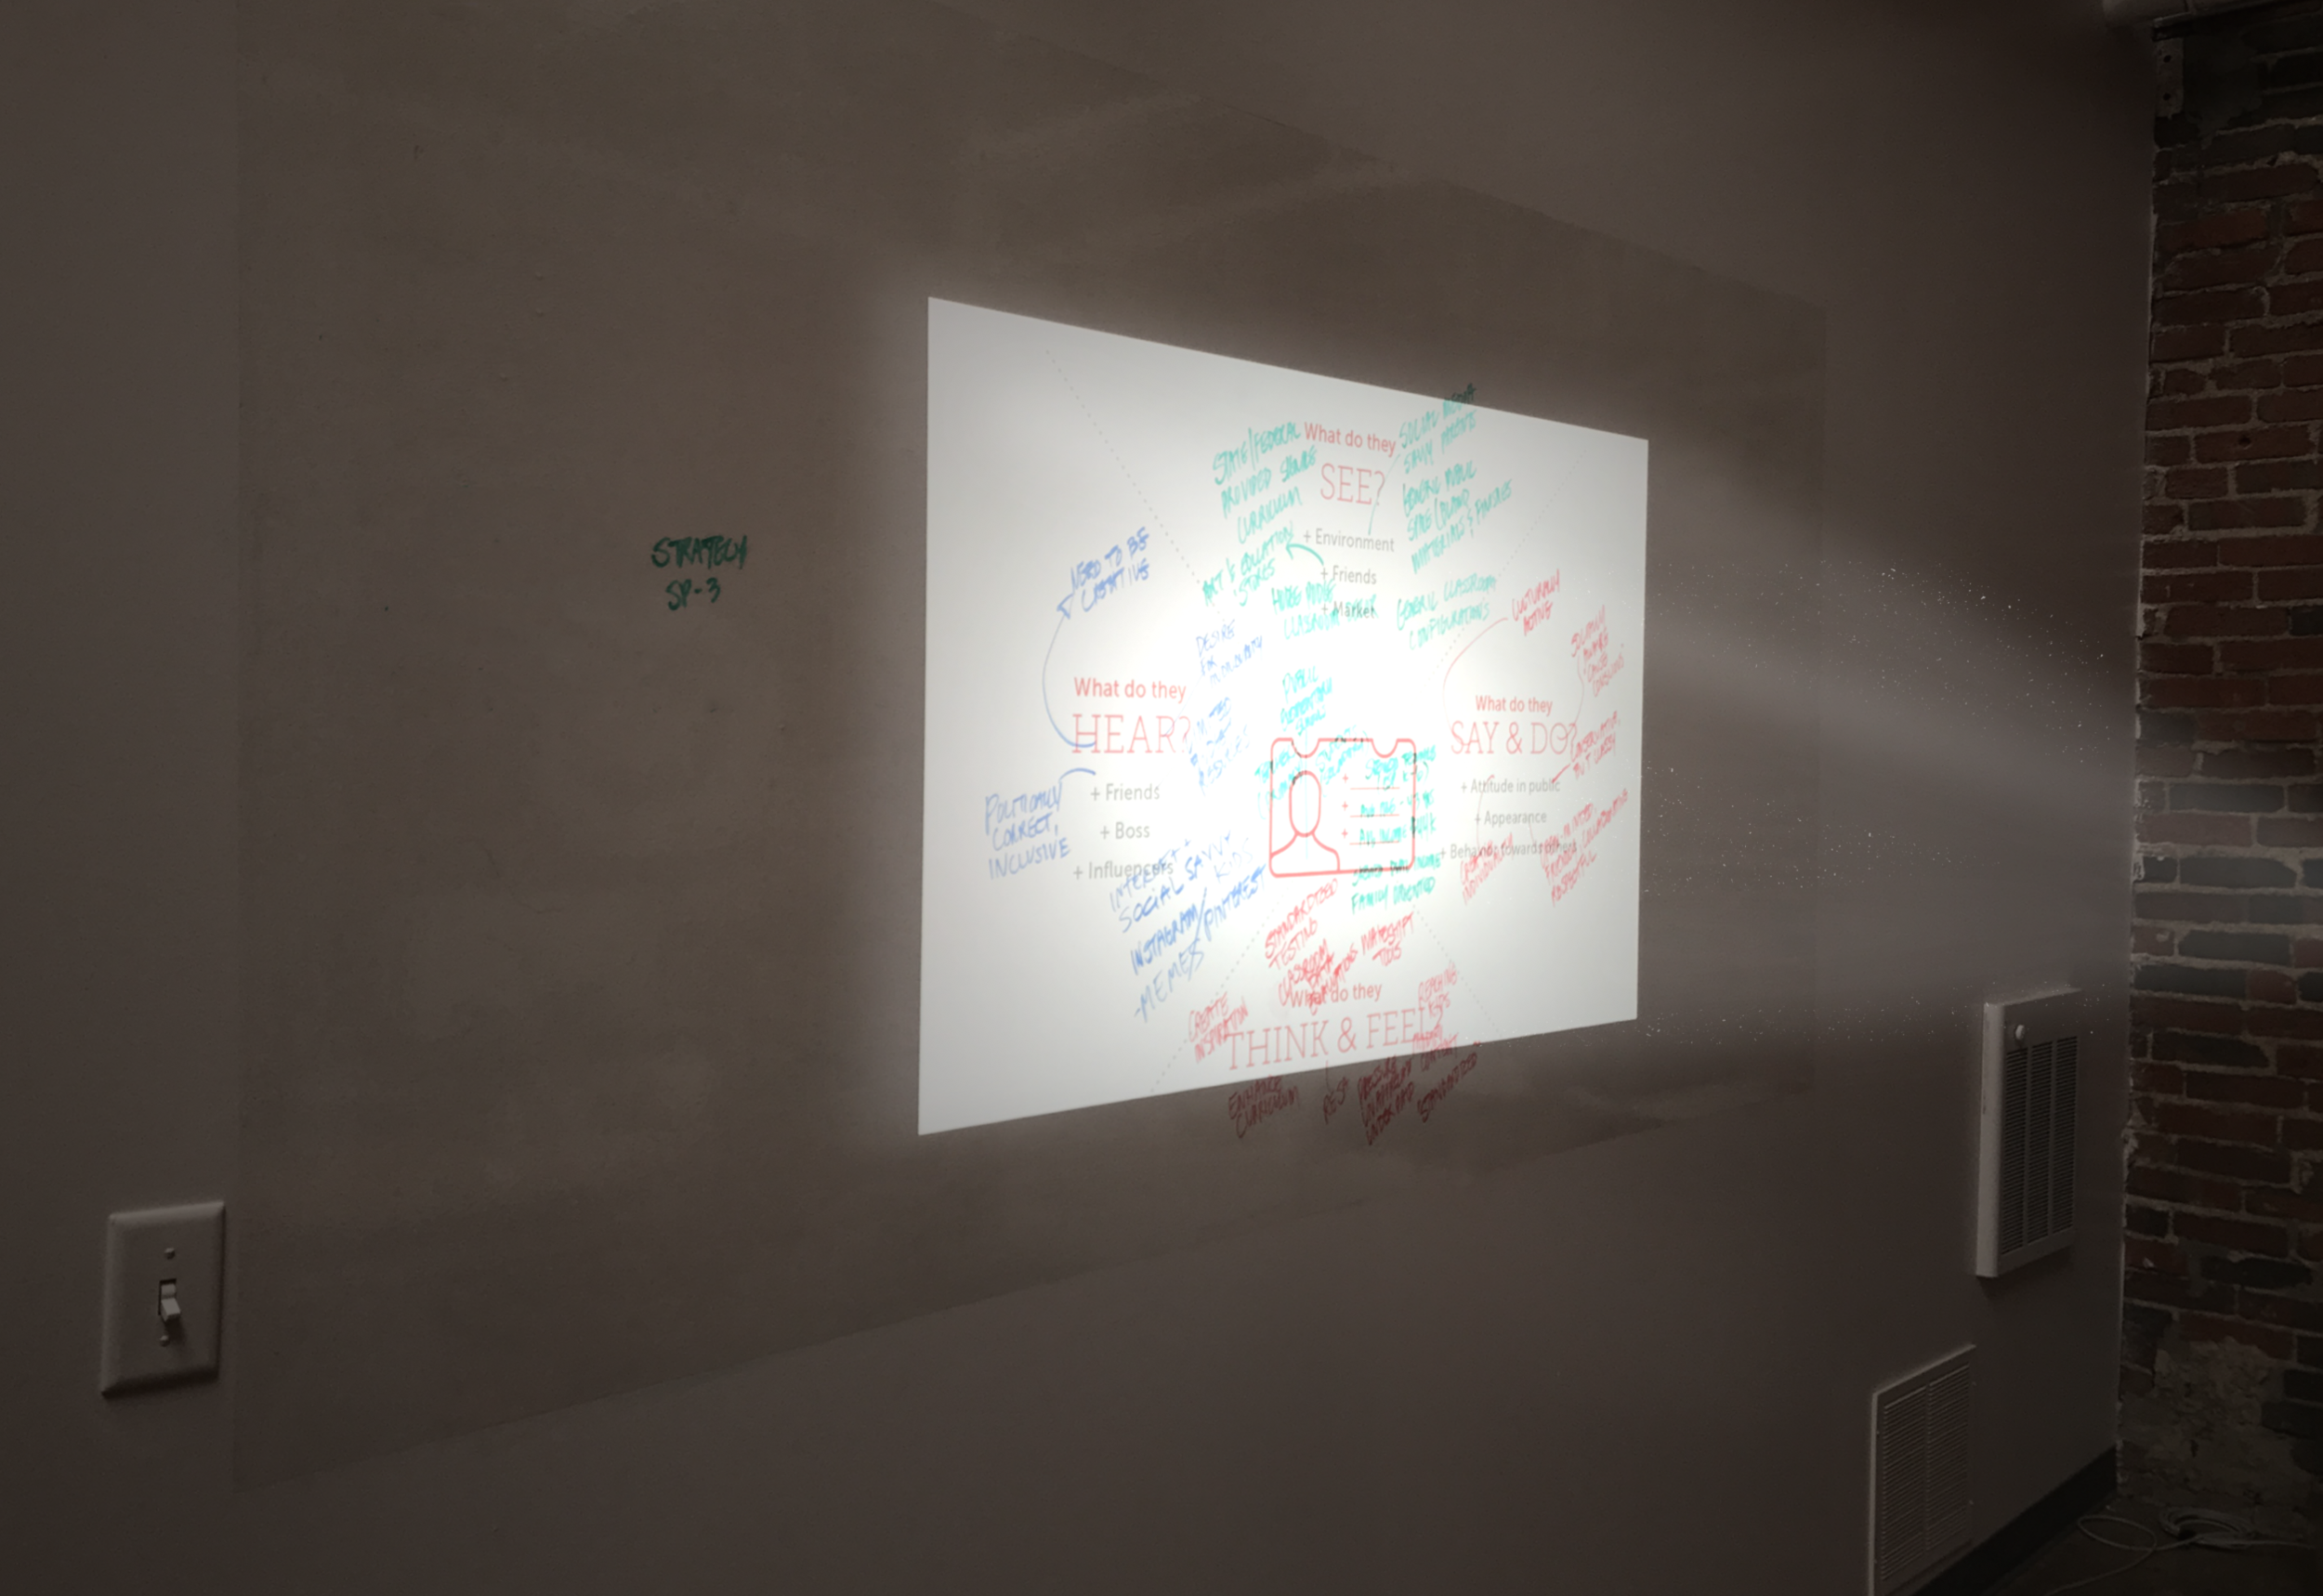 We turned our whiteboard into a strategy scratchpad thanks to our buddy @studiopence's projector.